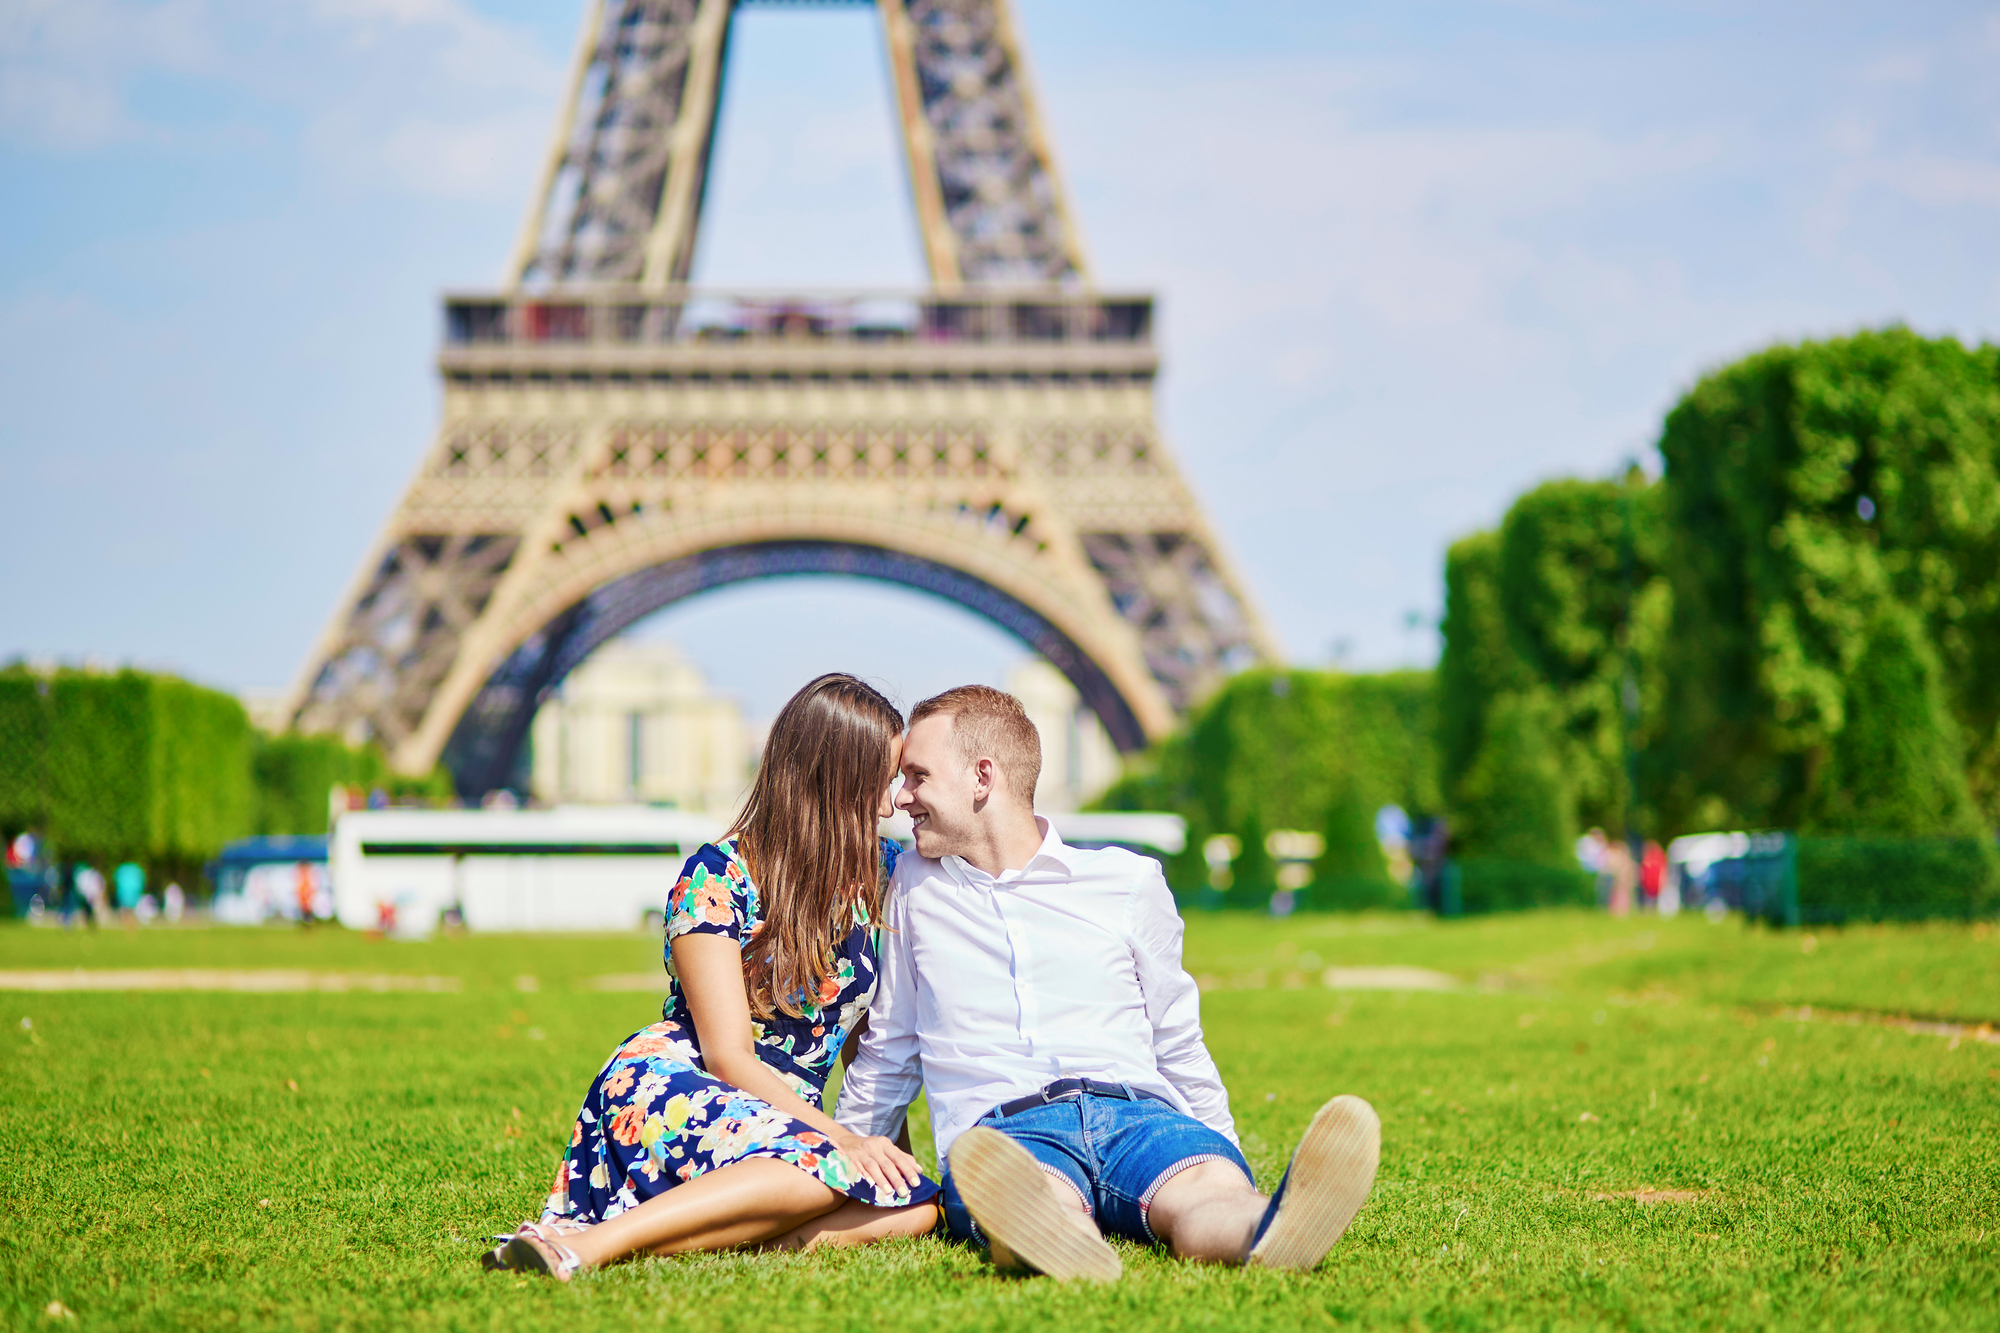 Young romantic couple having picnic and sitting on the grass near the Eiffel tower in Paris, France